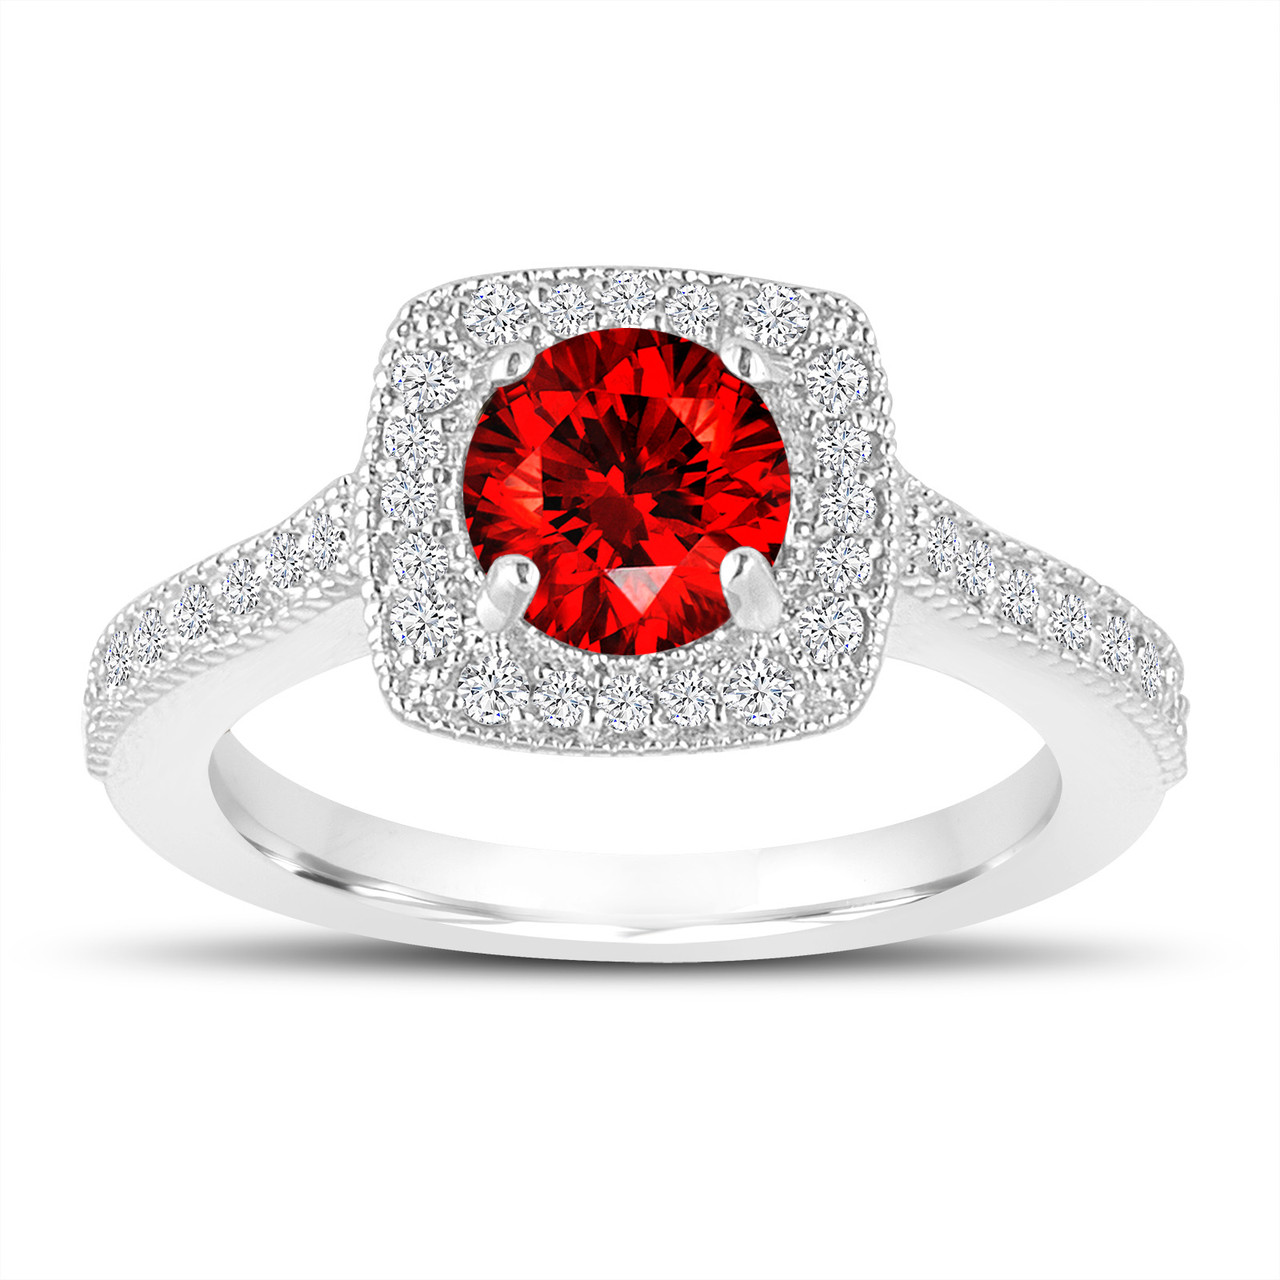 1.28 Carat Fancy Red Diamond Engagement Ring, Wedding Ring